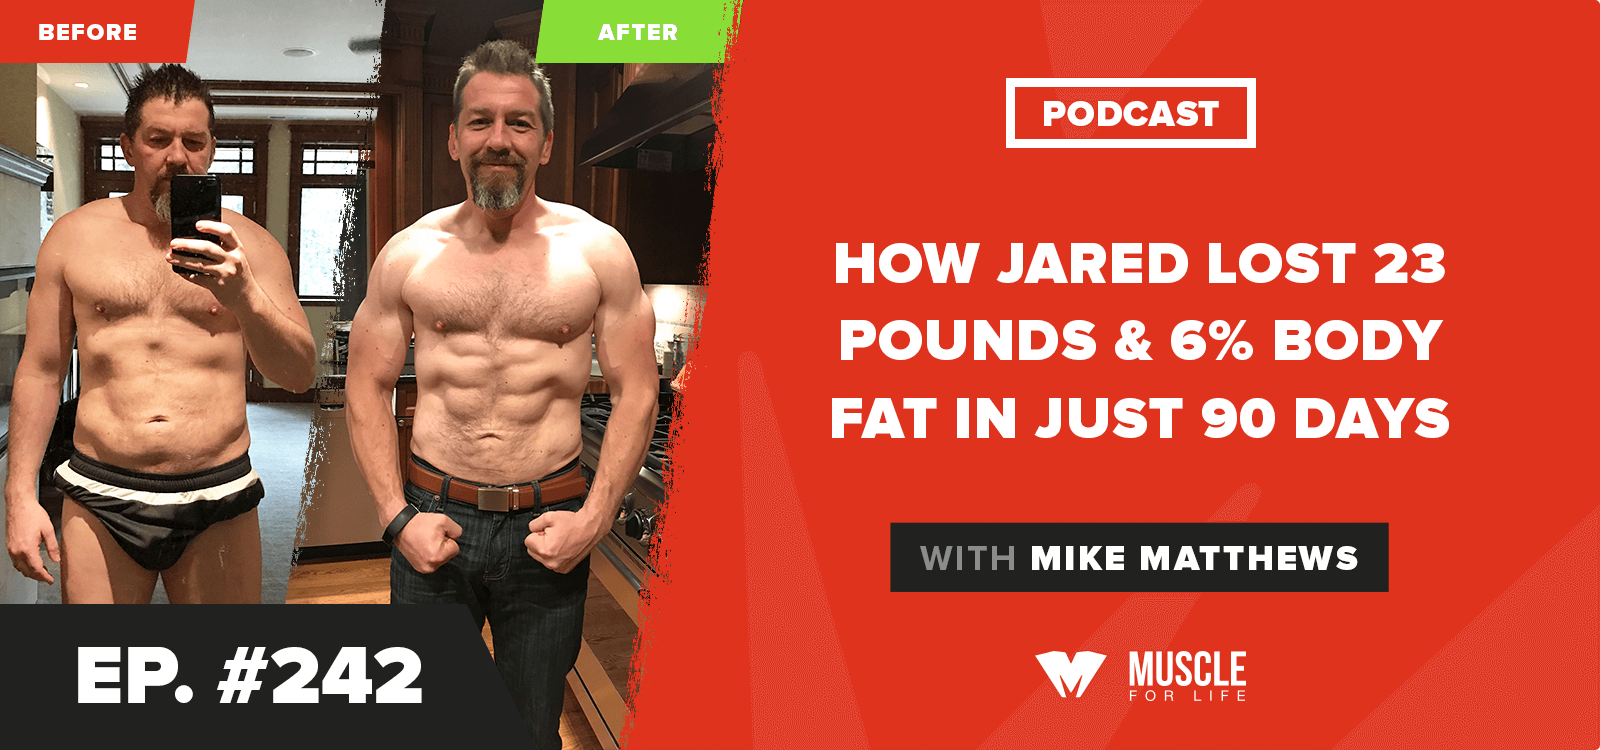 How Jared Lost 23 Pounds & 6% Body Fat In Just 90 Days